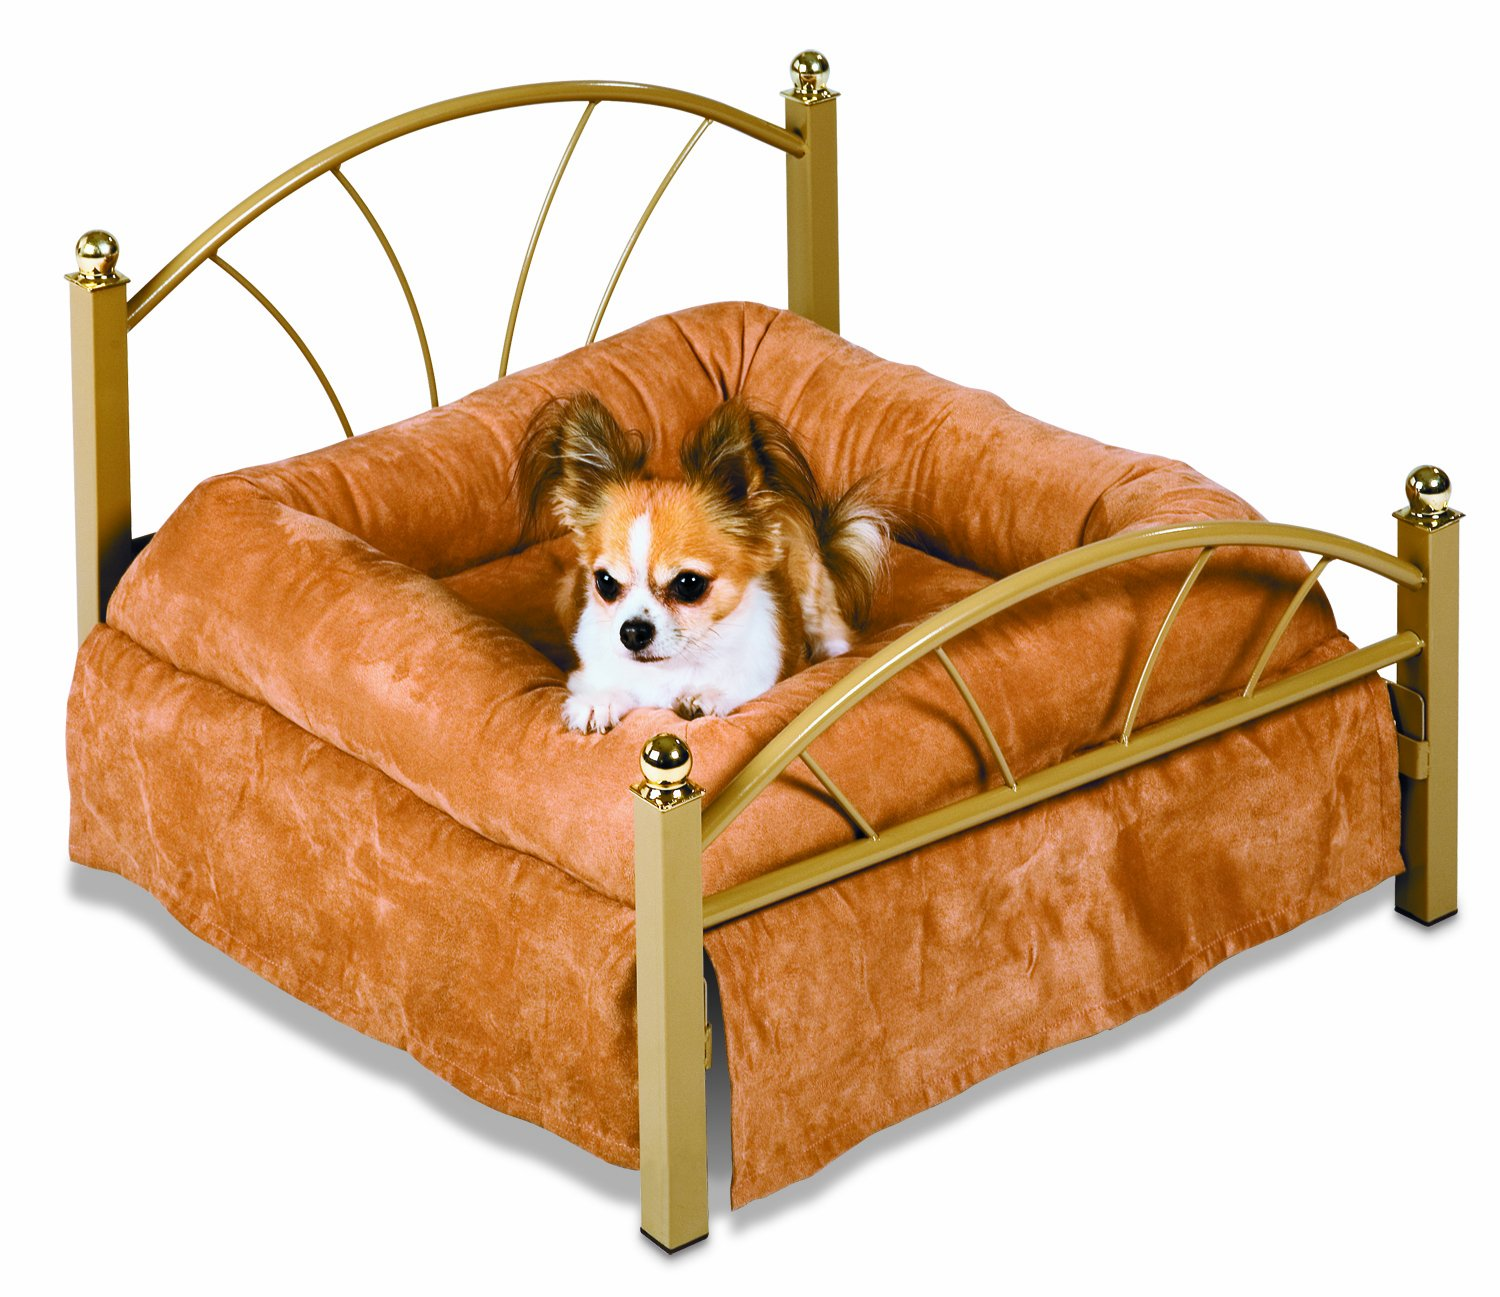 Dog Proof Sofa picture on dog beds that look like human beds with Dog Proof Sofa, sofa 90deff4b32c134f32e3f0d7e8a2aad92